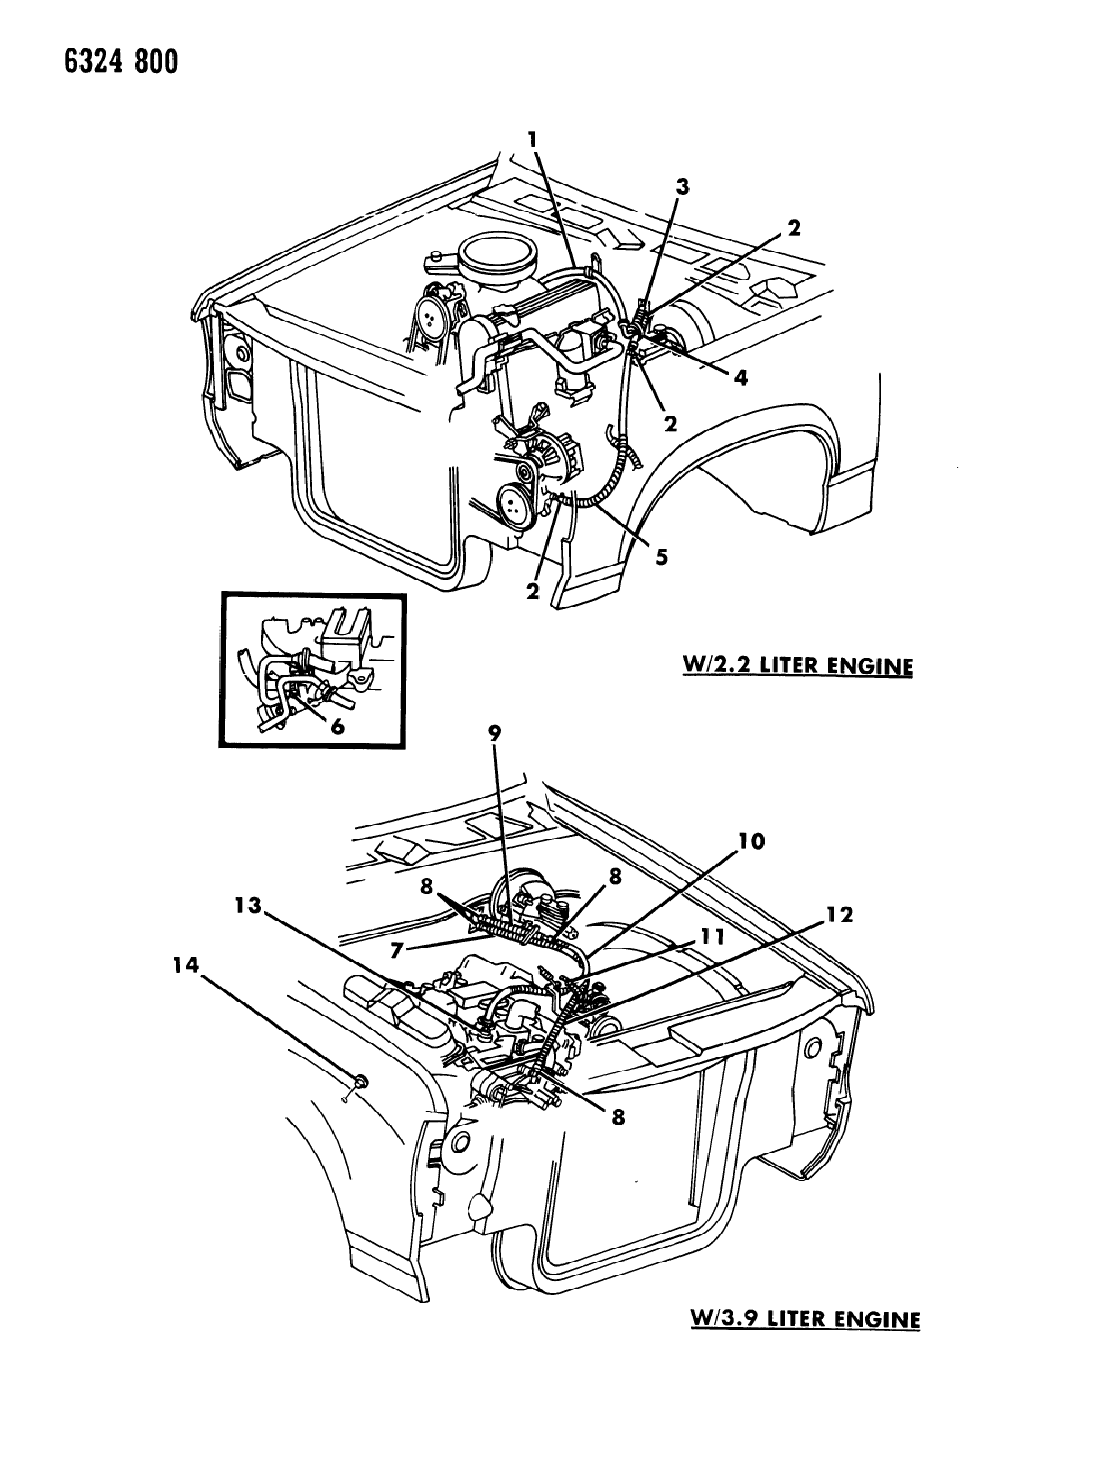 1987 Dodge Dakota Plumbing - Heater